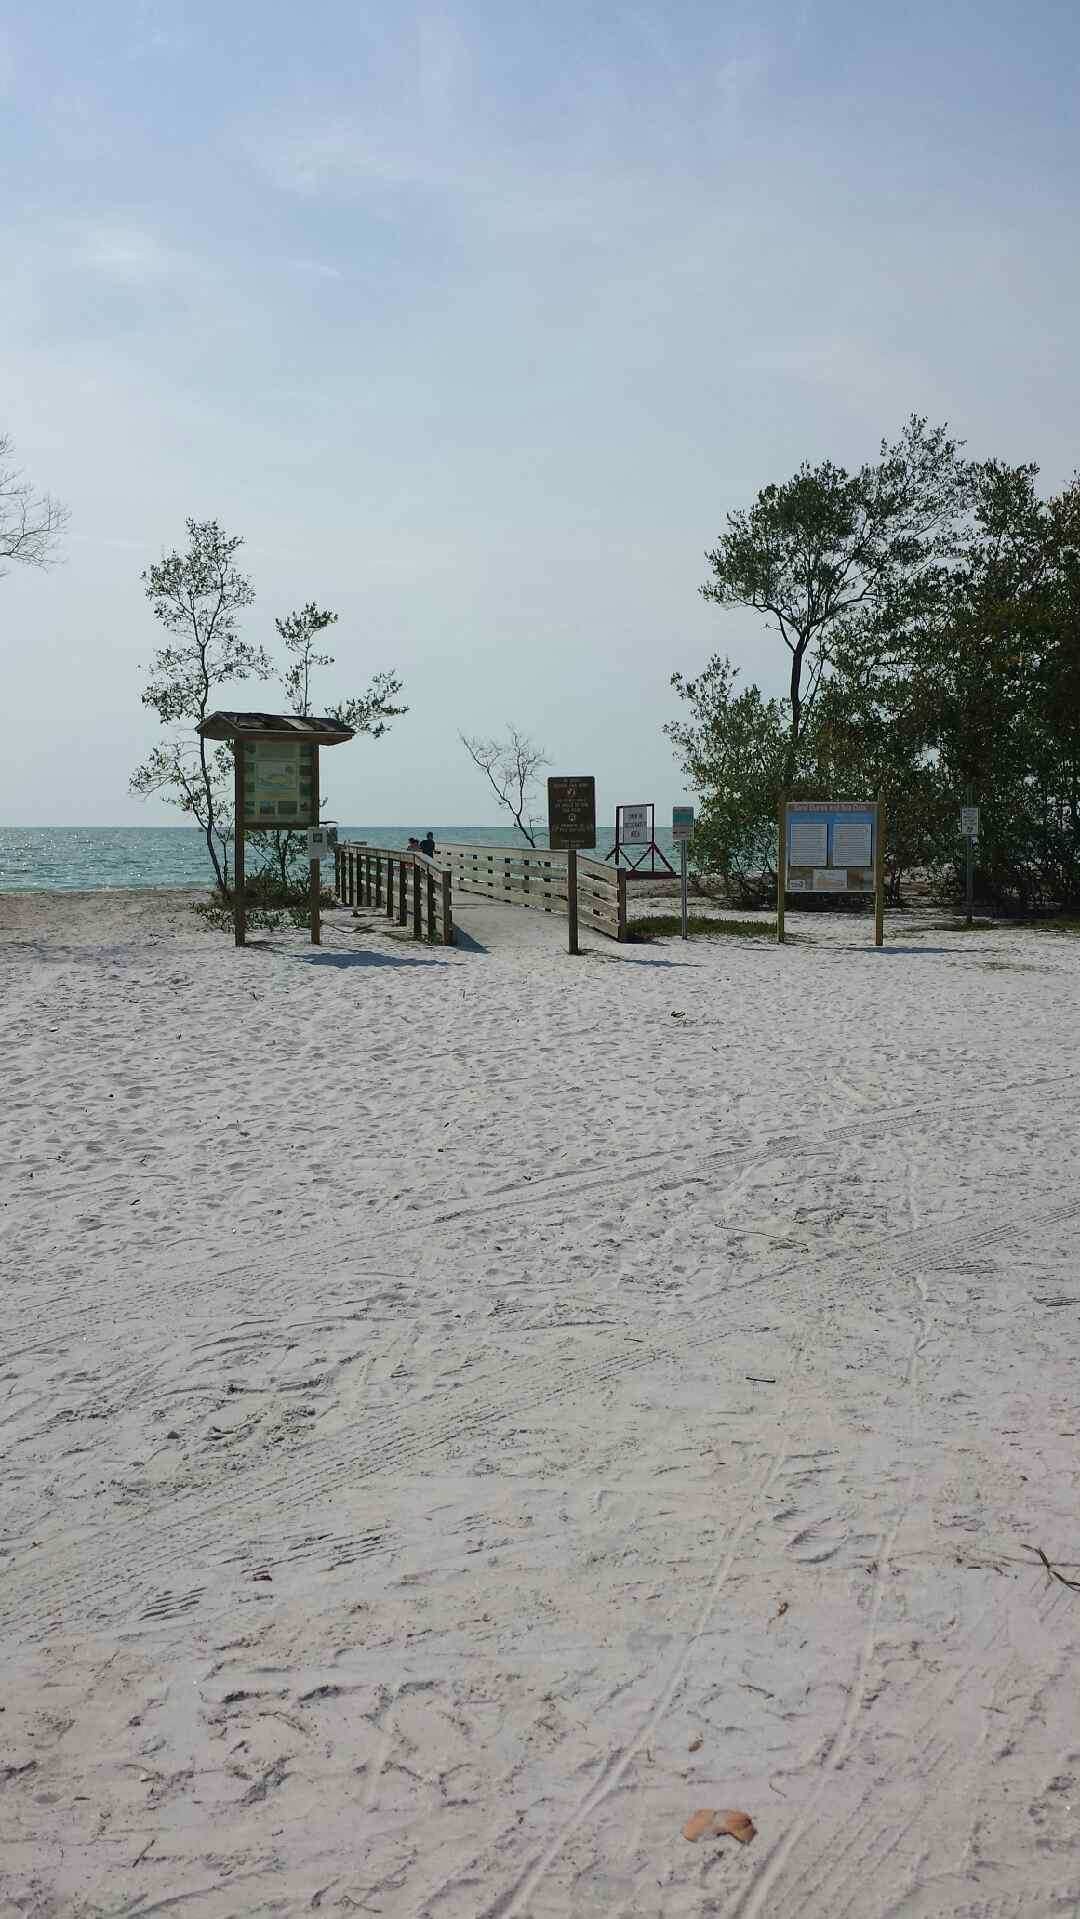 Ft. De Soto National Park